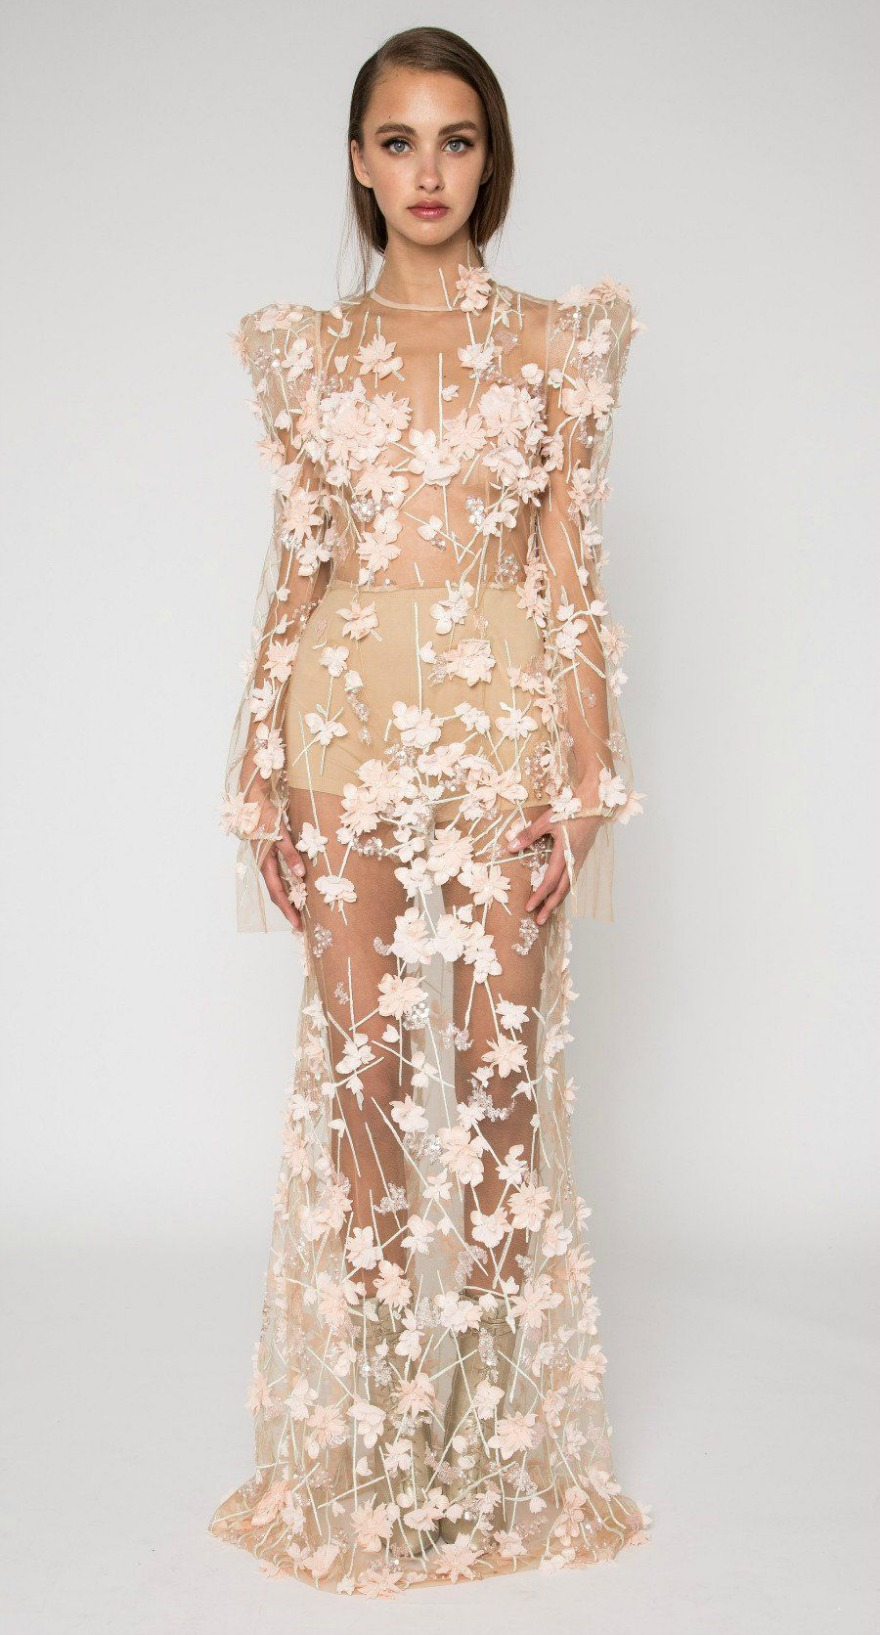 Wedding dresses with sleeves by Narces | Confetti.co.uk